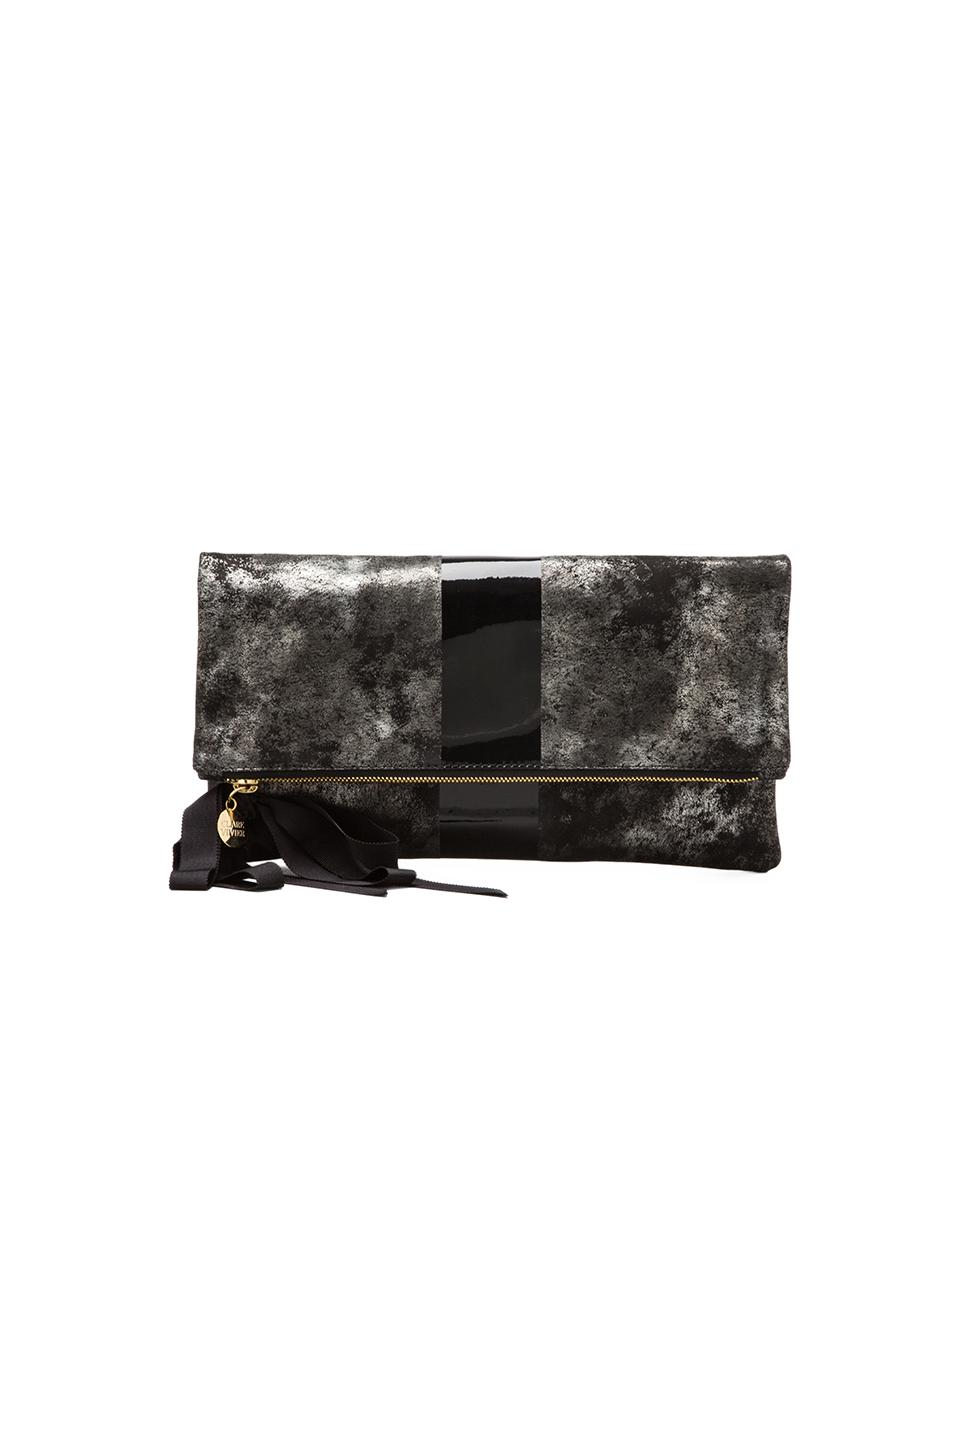 Clare V. Foldover Clutch in Black/Pewter